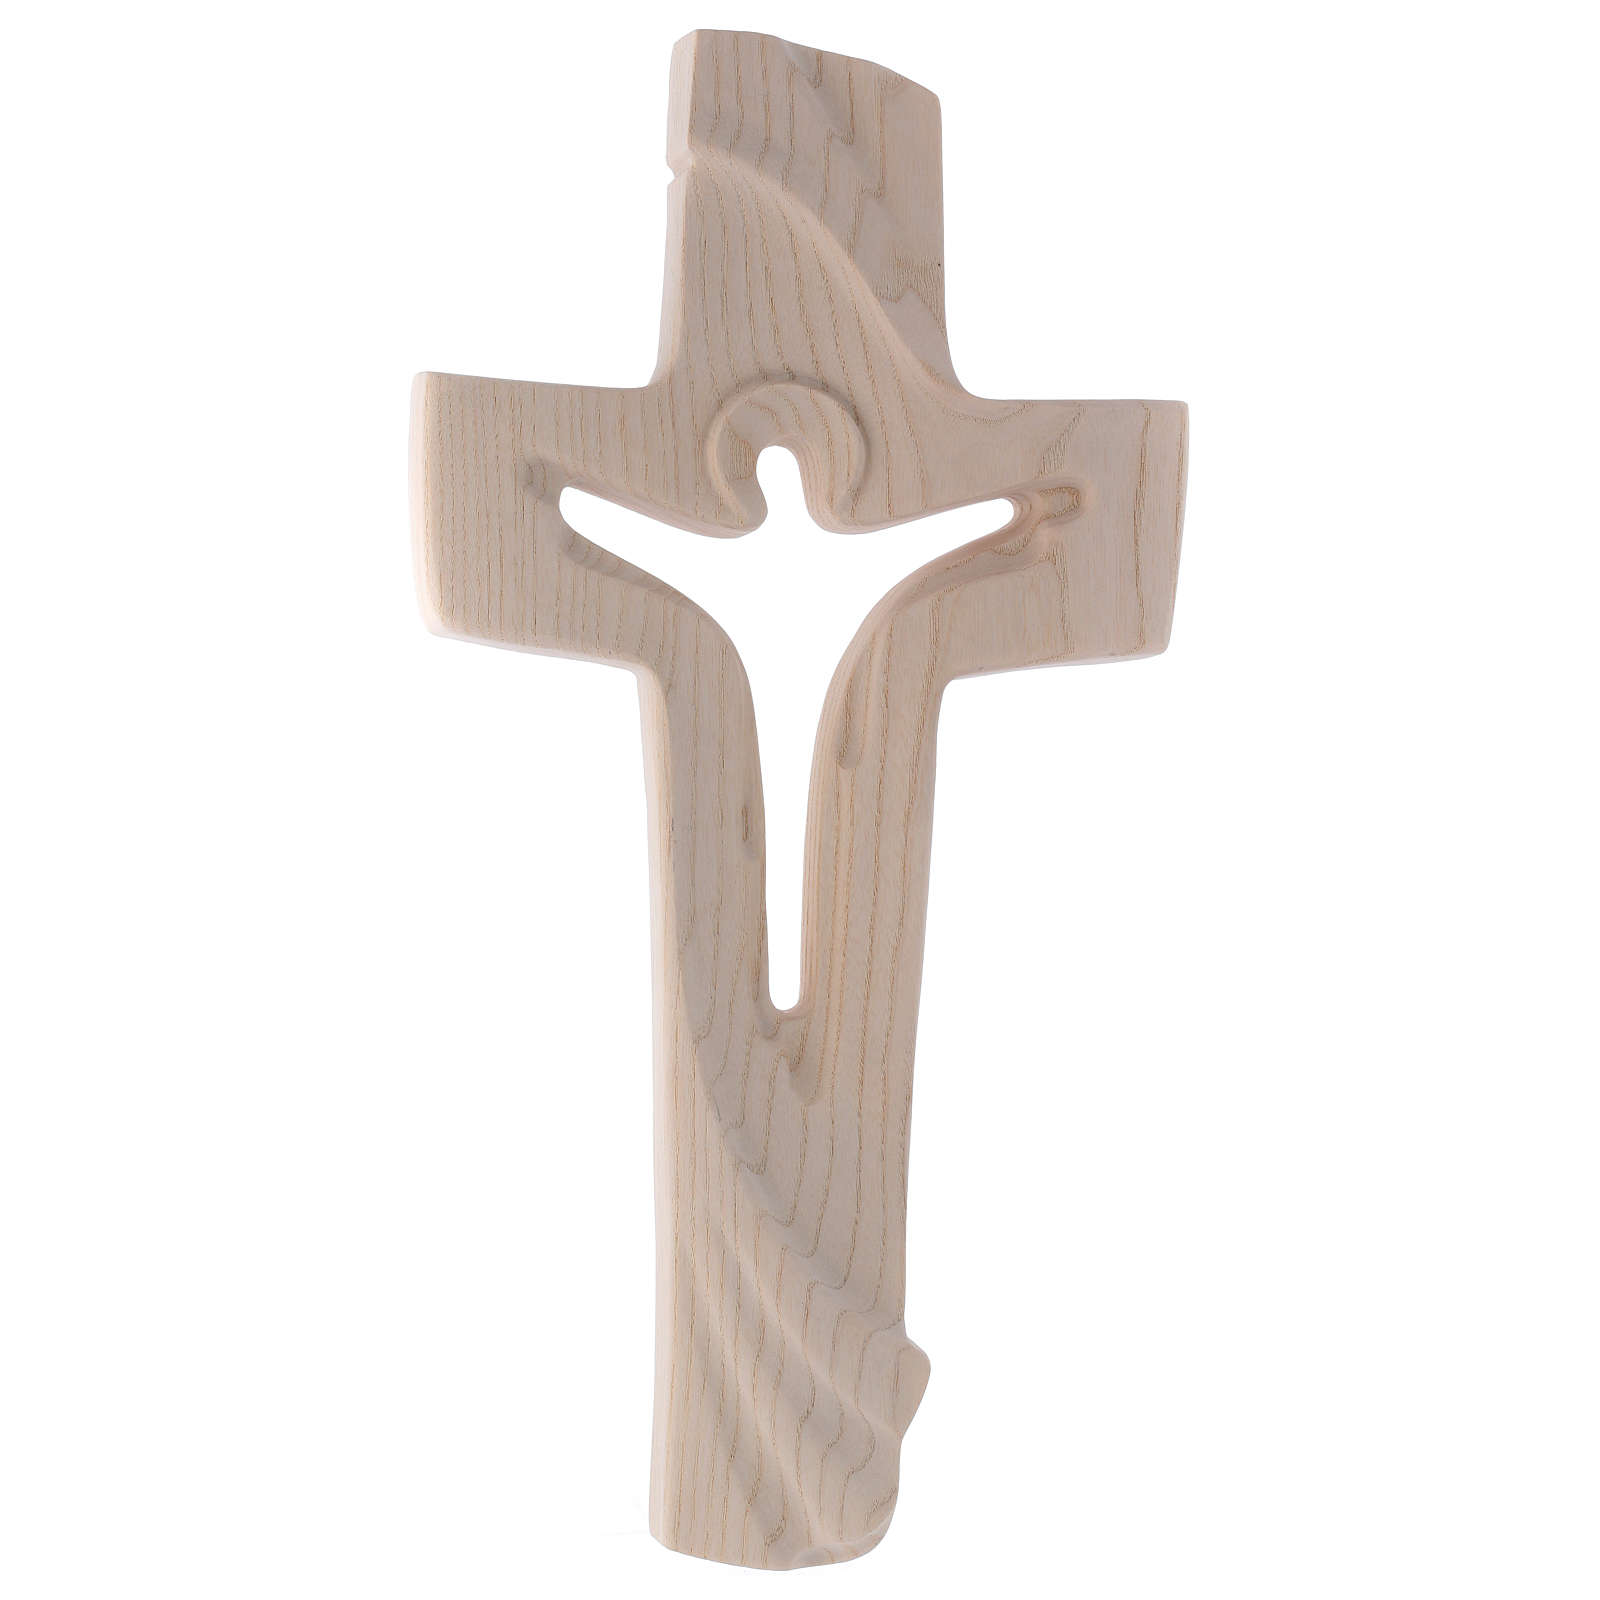 Risen Christ cross in ash wood, Val Gardena rural design 4